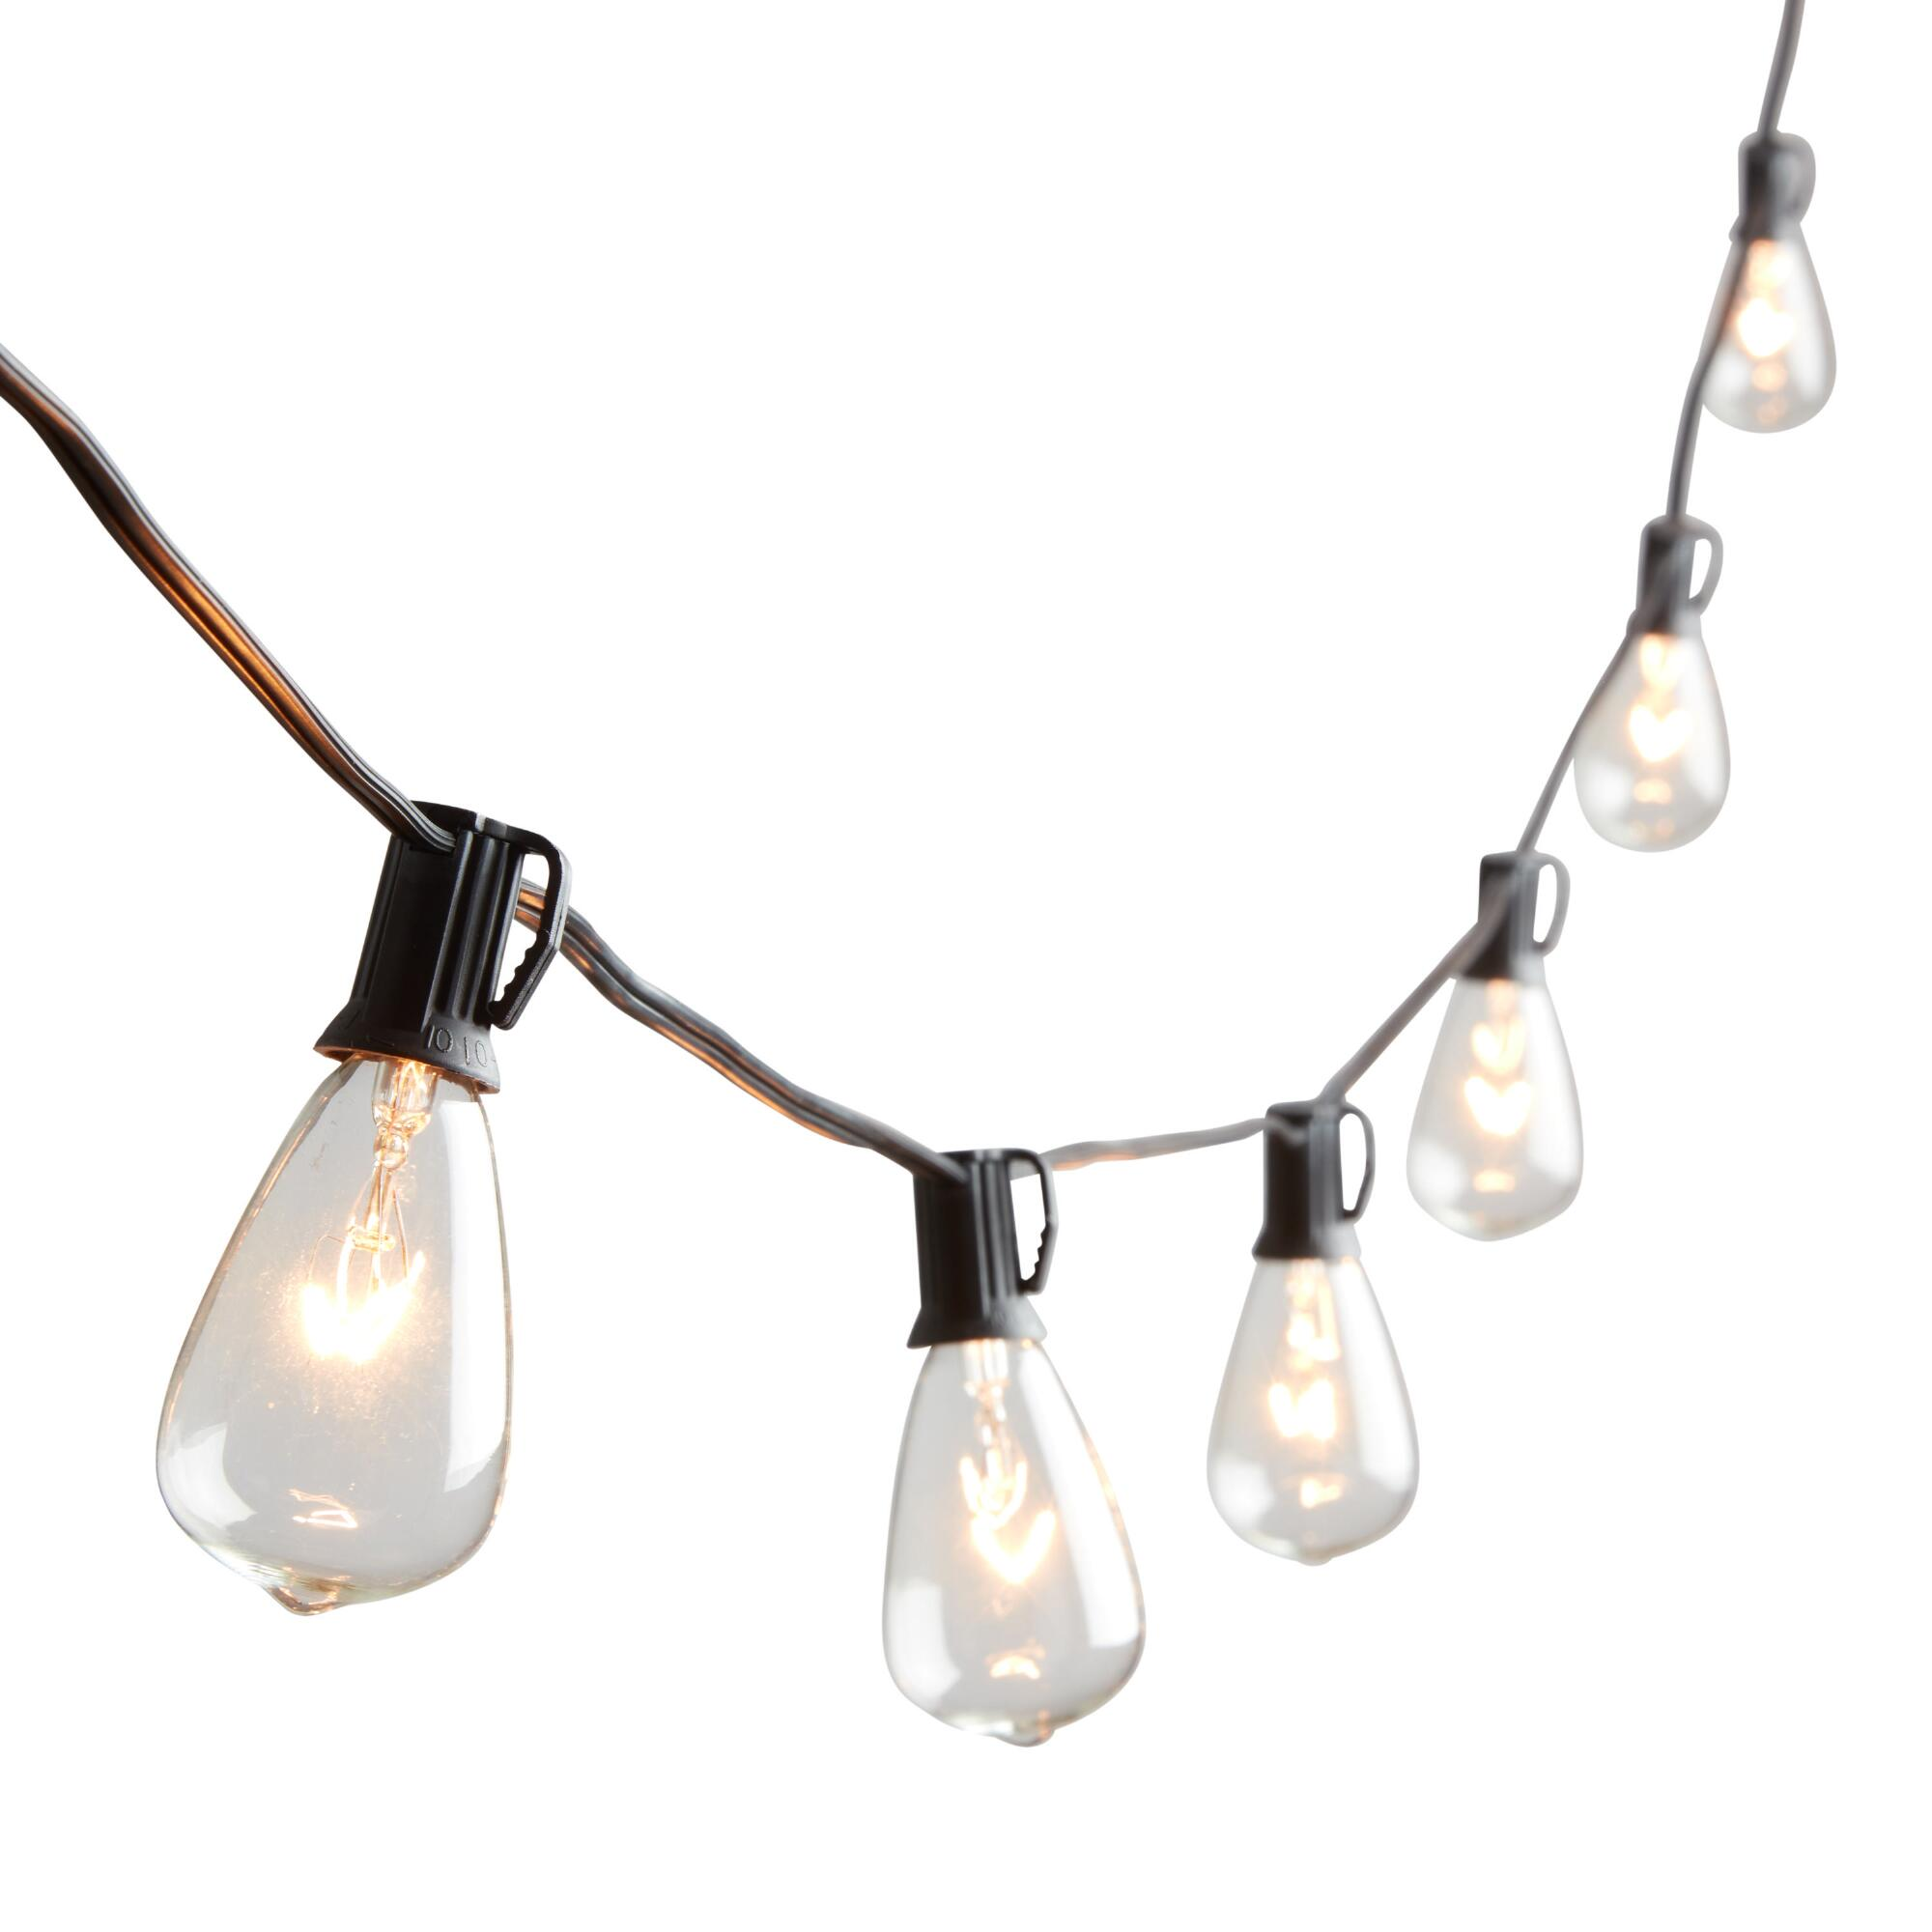 Outdoor String Lights Hardware: Edison-Style String Lights